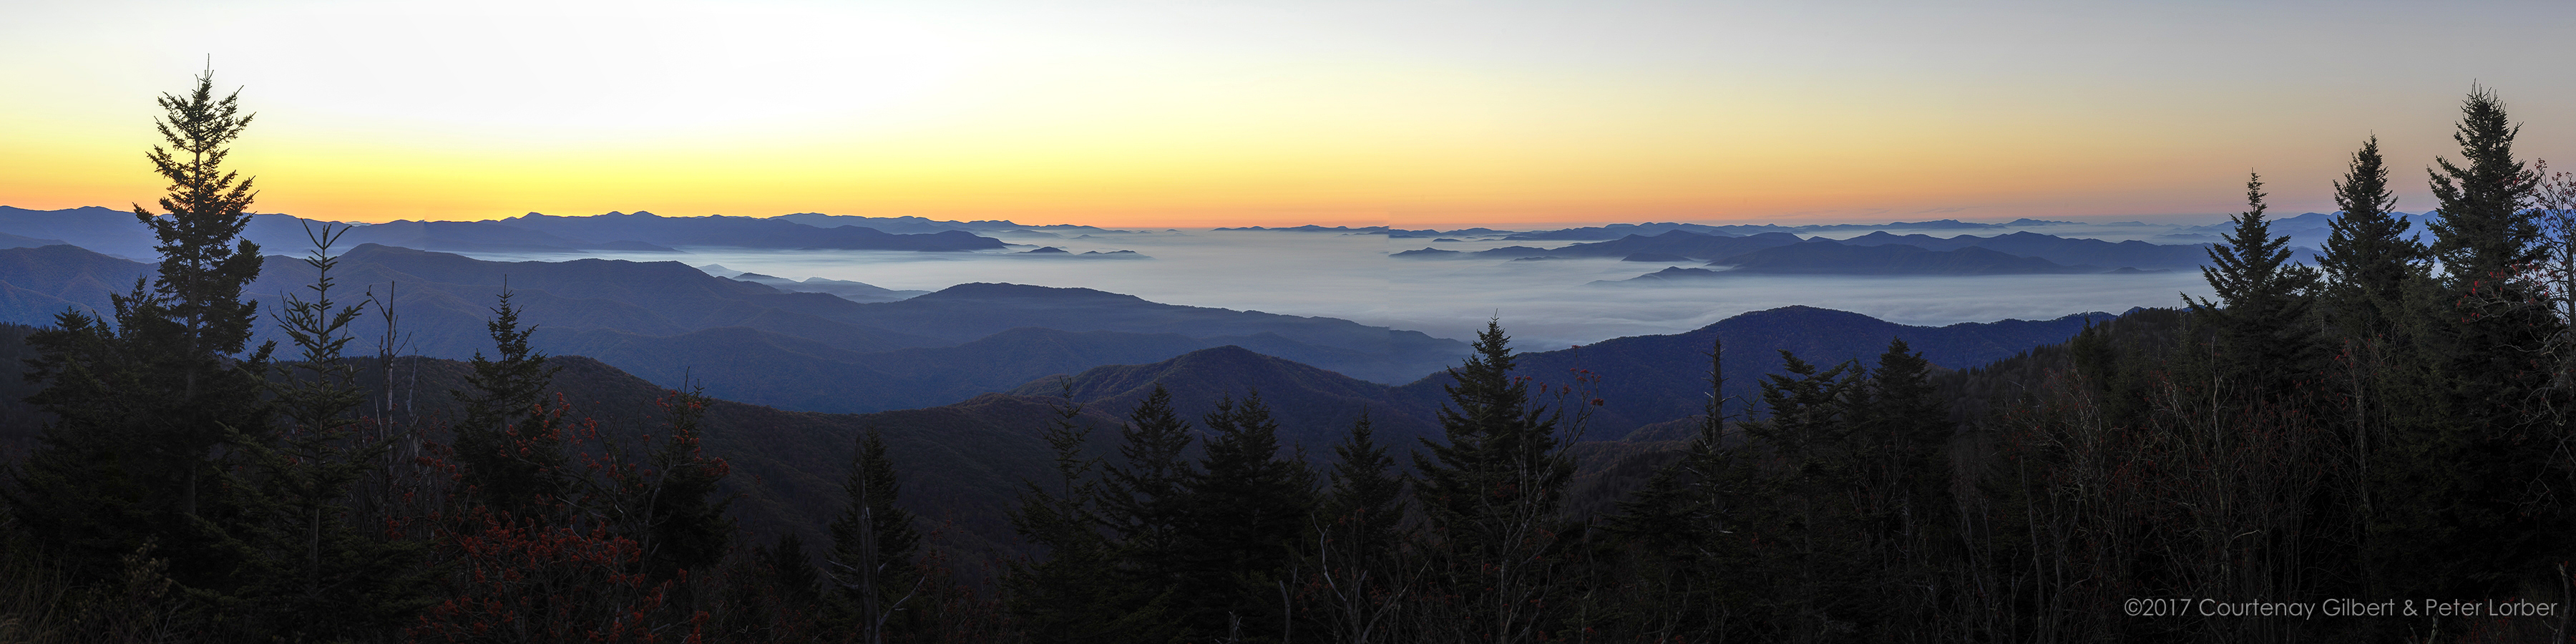 Clingmans Dome Dawn